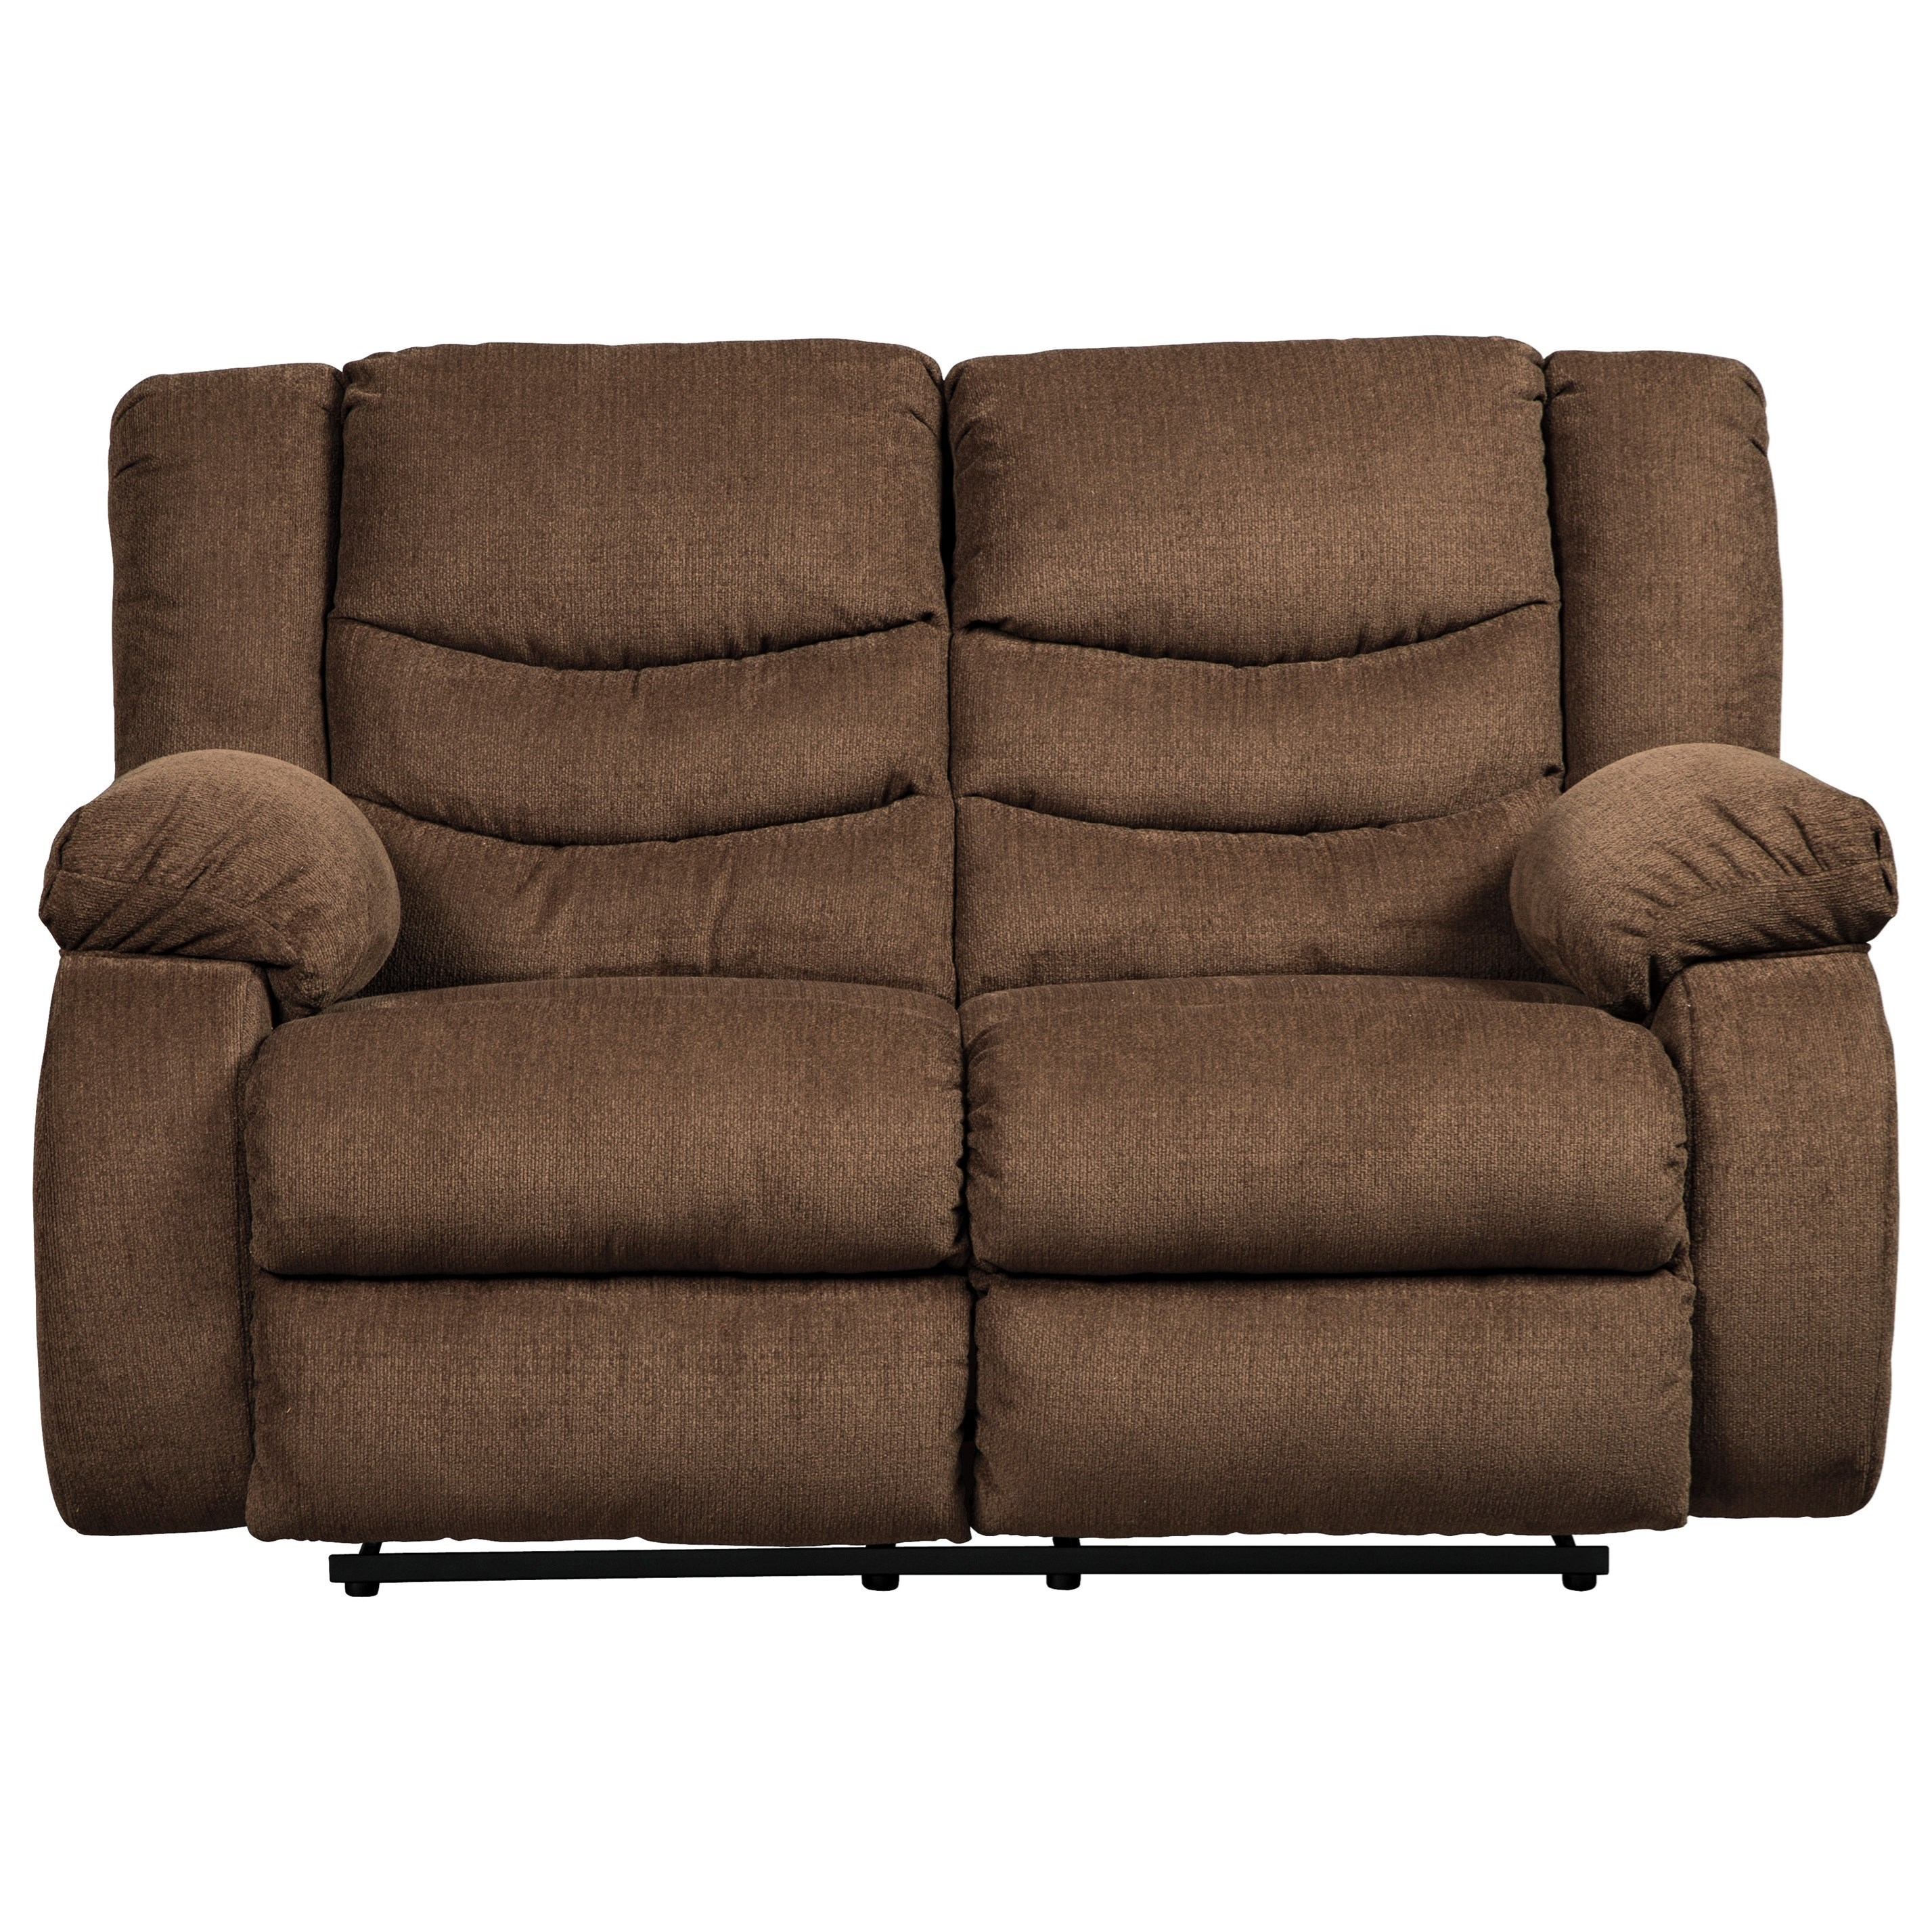 Signature Design By Ashley Tulen Contemporary Reclining Loveseat Rife 39 S Home Furniture